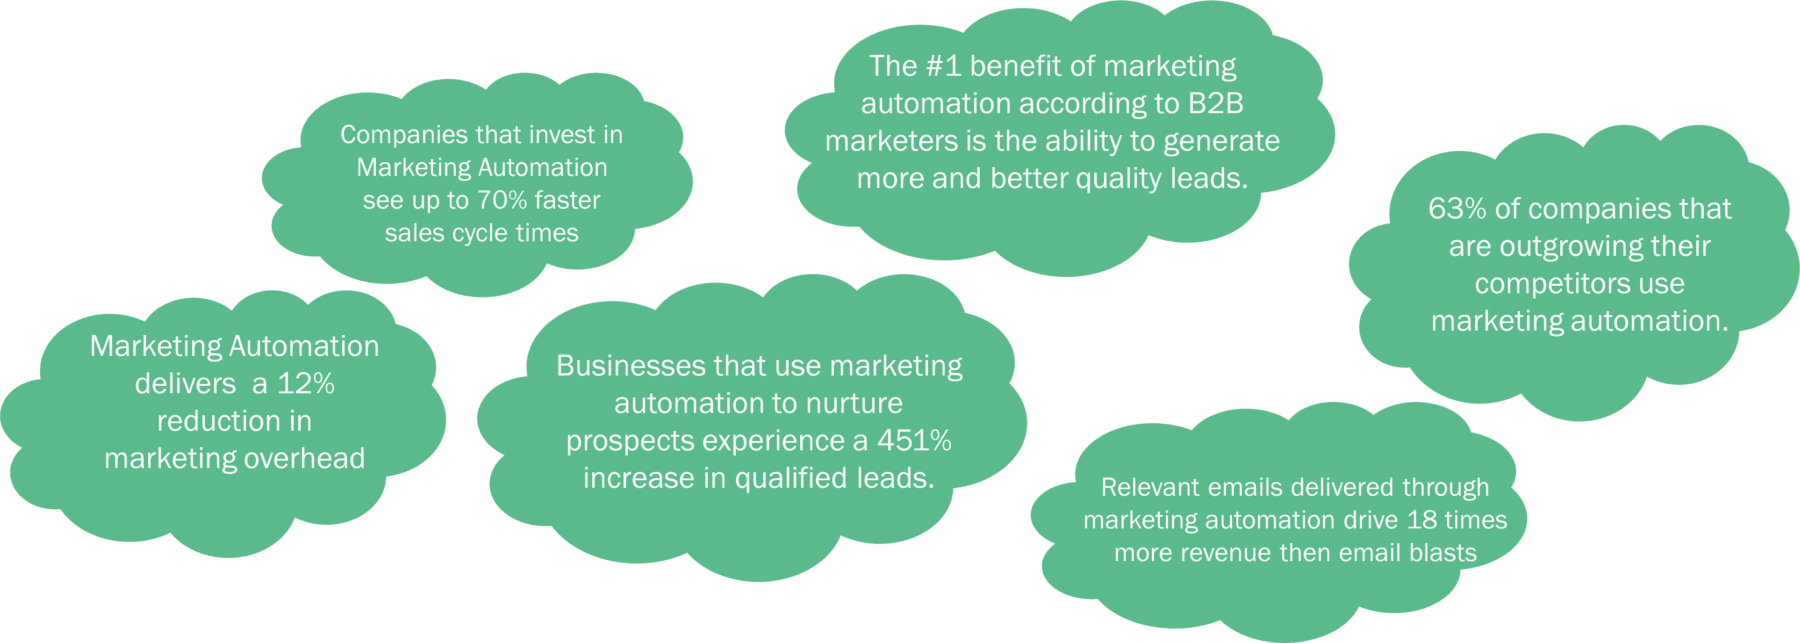 Marketing Automation Stats in the cloud